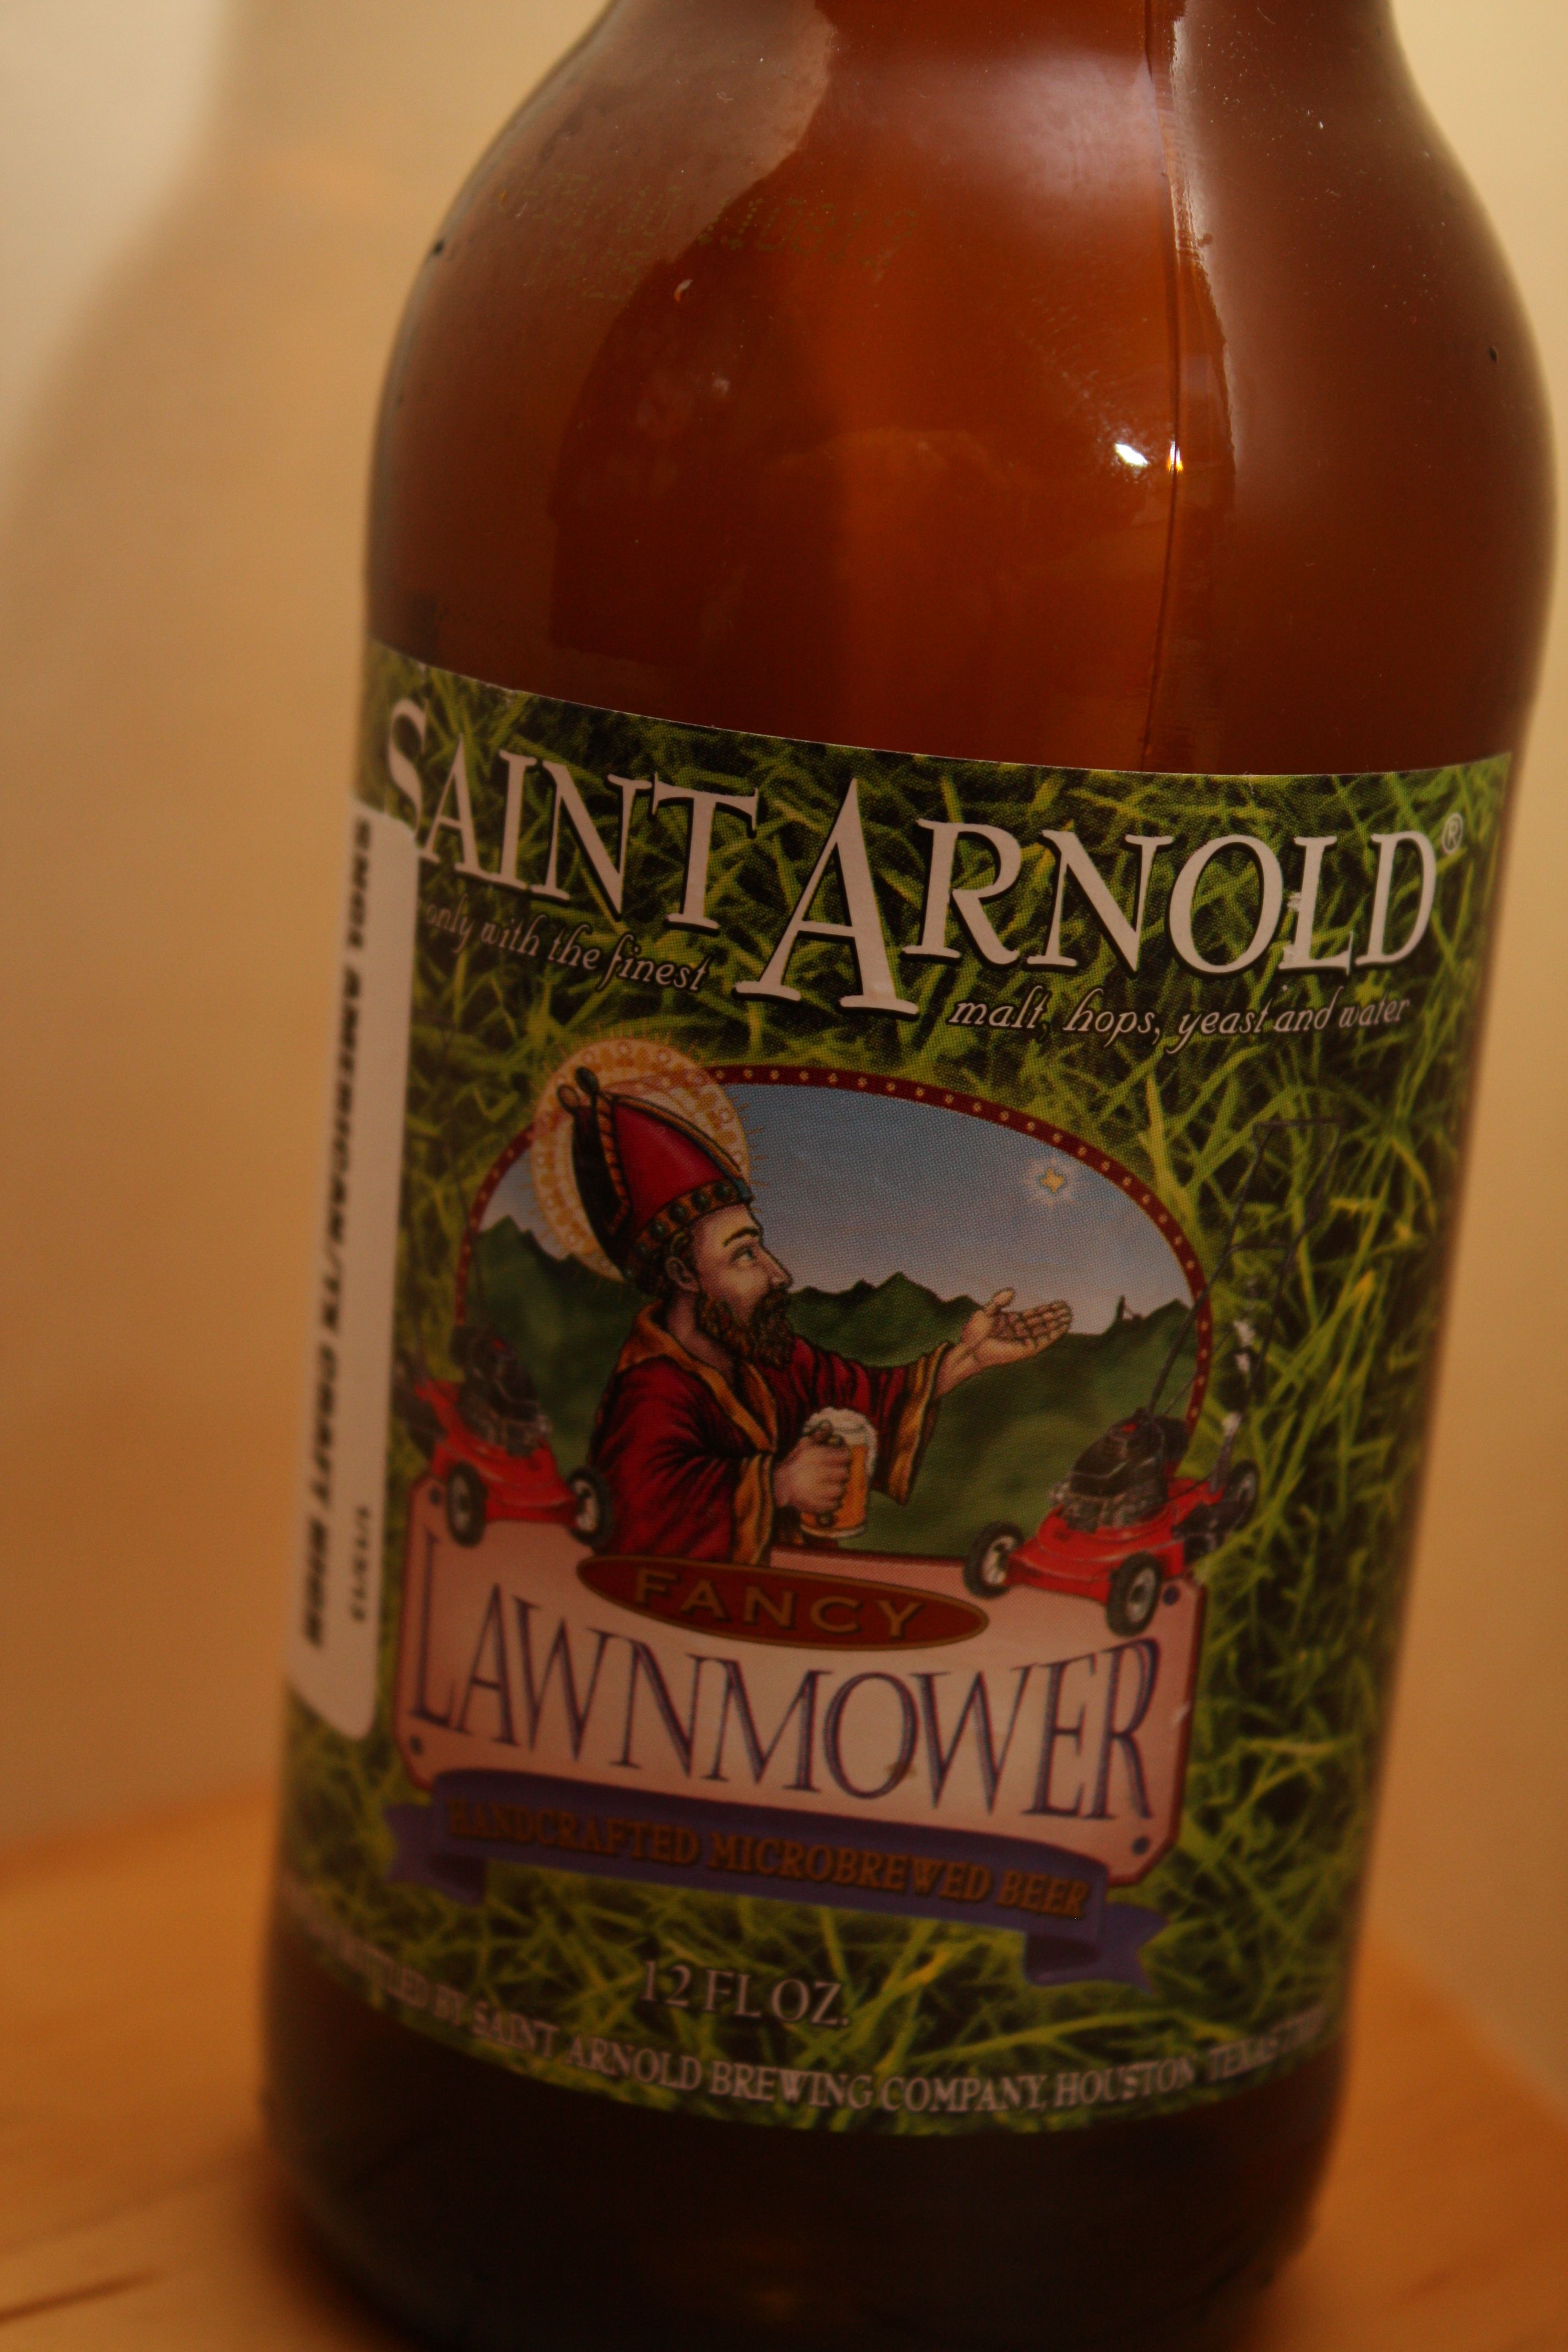 Saint Arnold - Fancy Lawnmower    Nice and easy drinking beer.  Great for a summers day